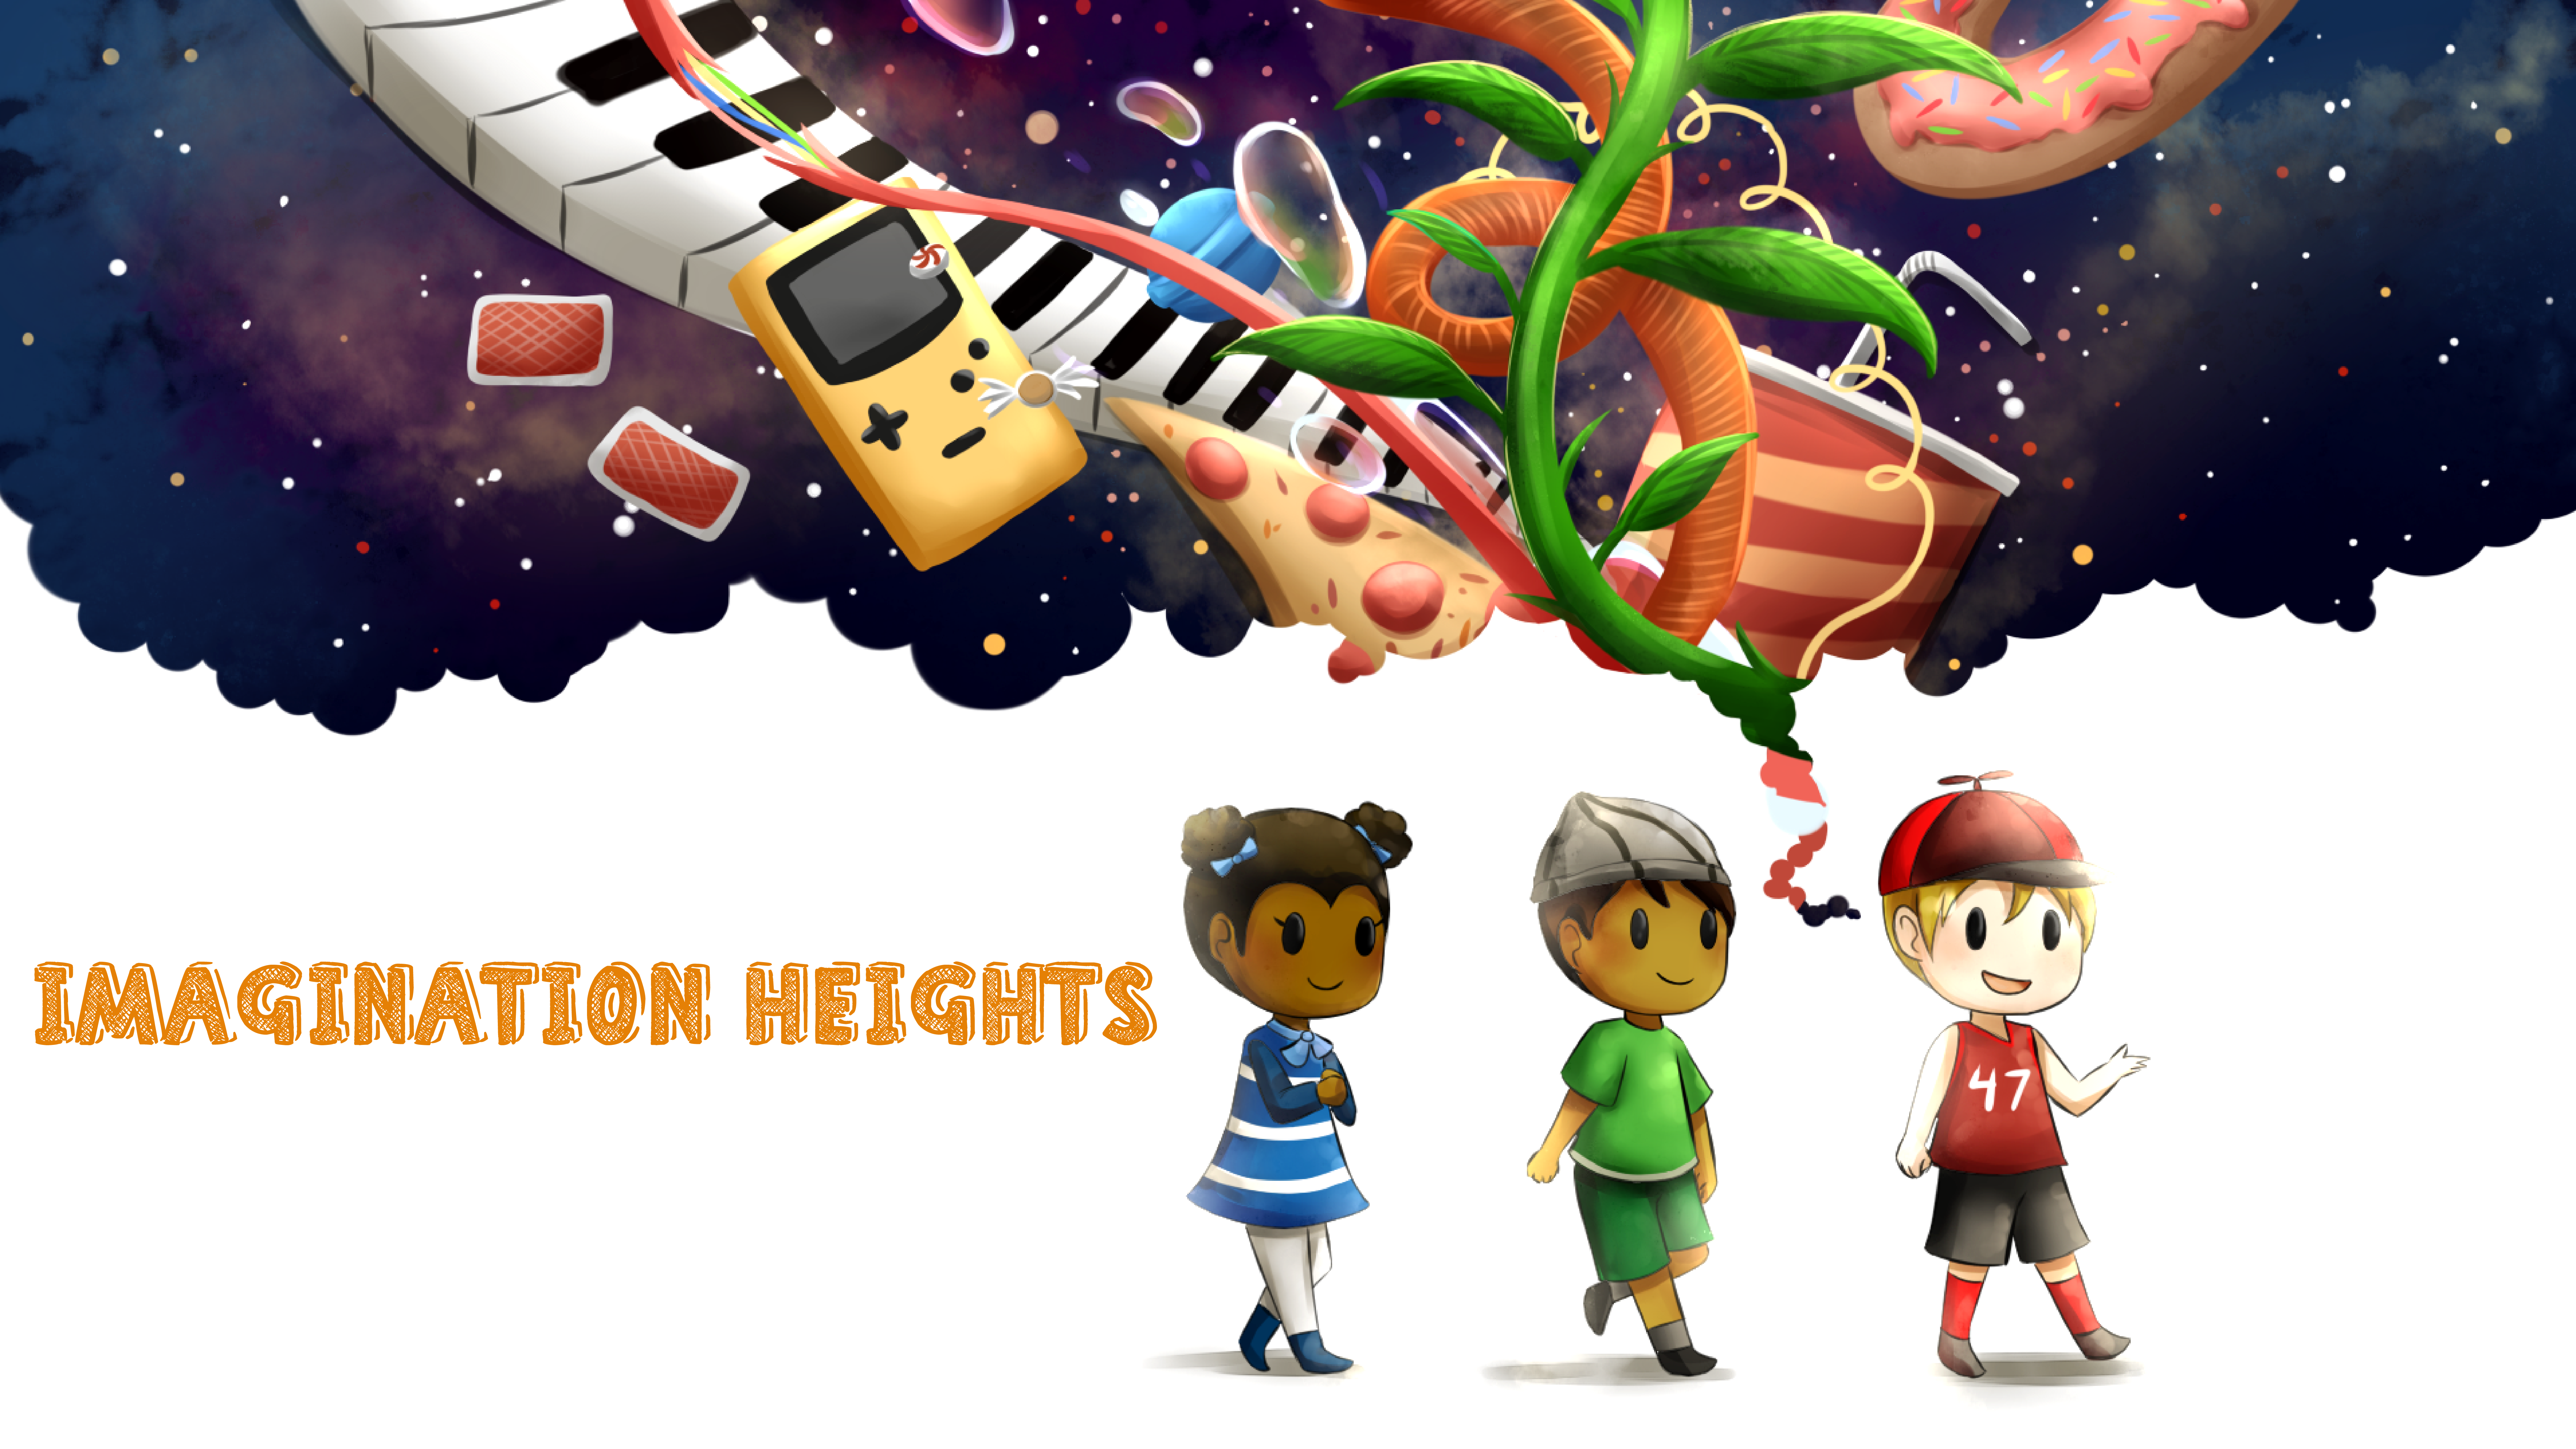 Imagination Heights